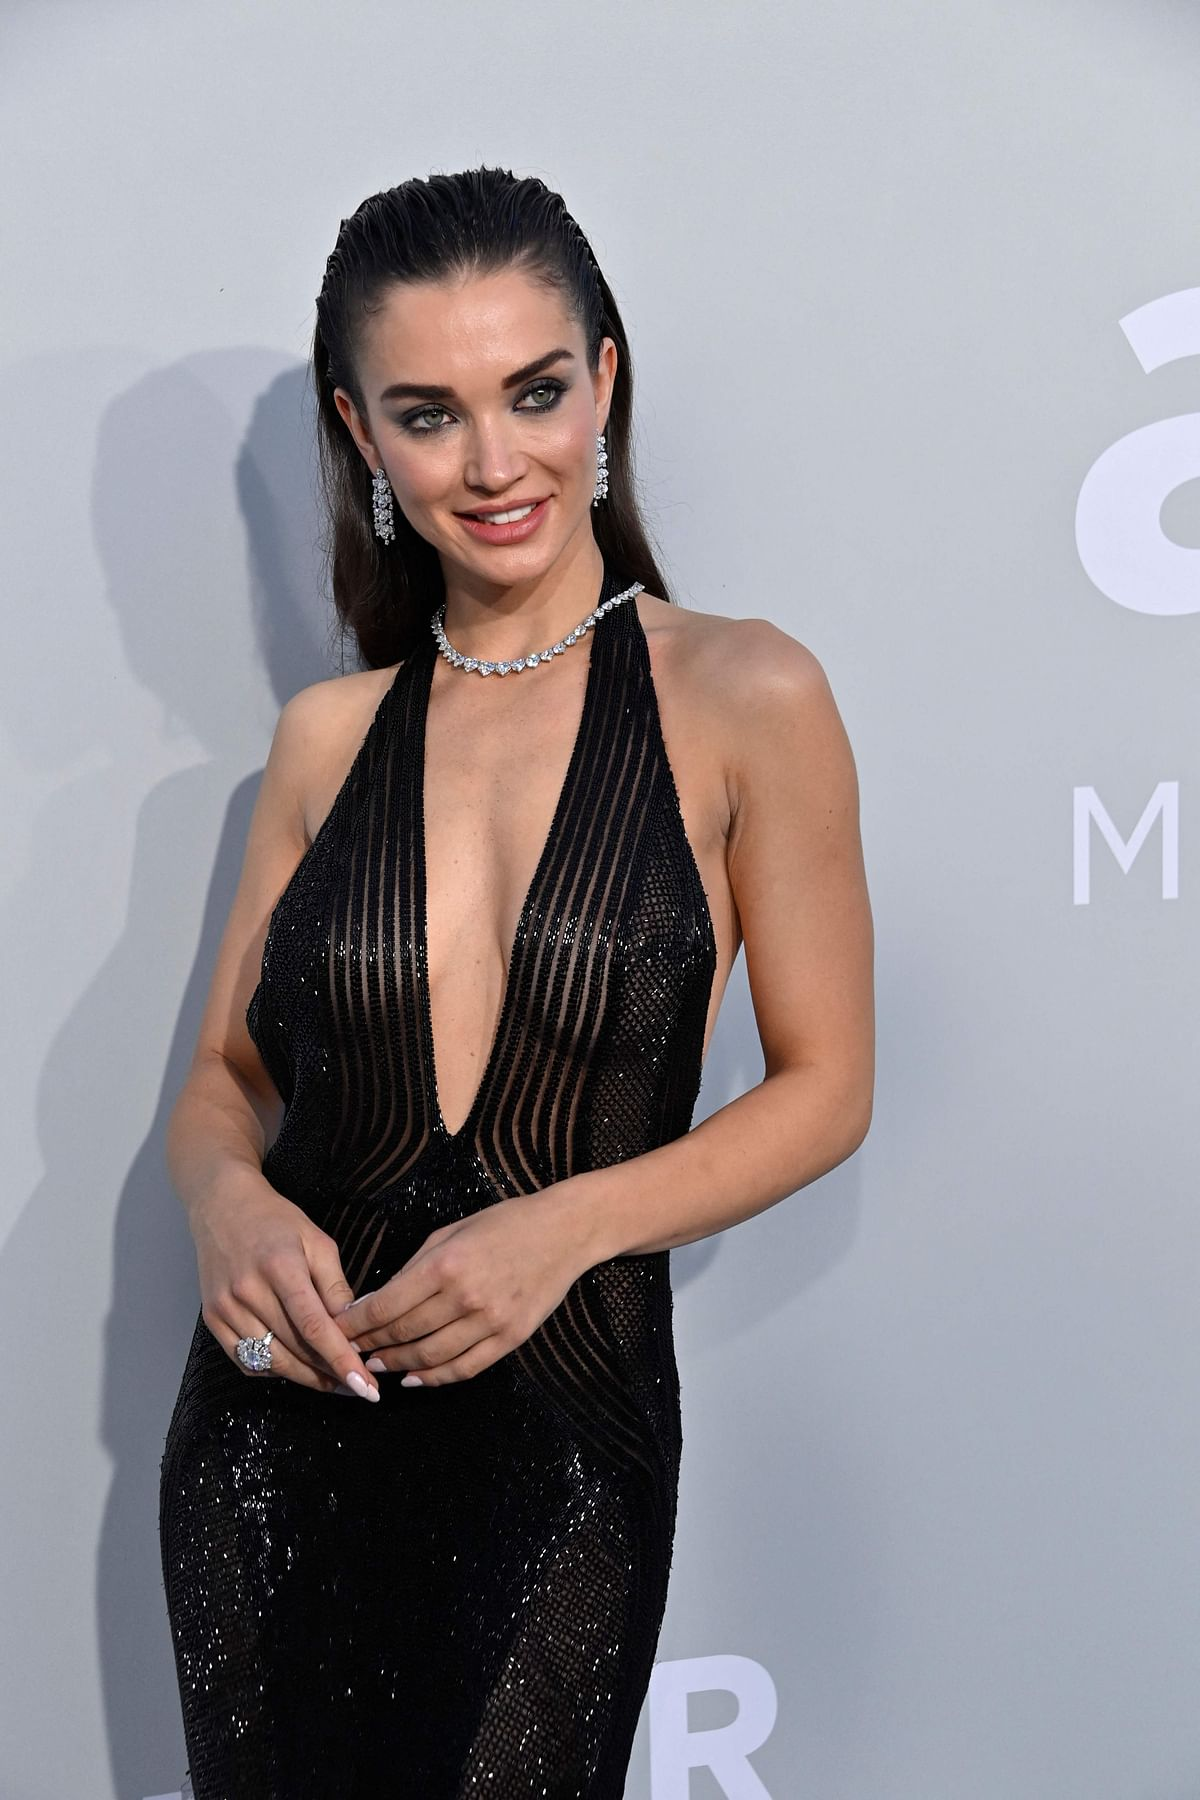 Cannes 2021: From burgundy ball gown to sheer black dress, '2.0' fame Amy Jackson's fashionable moments